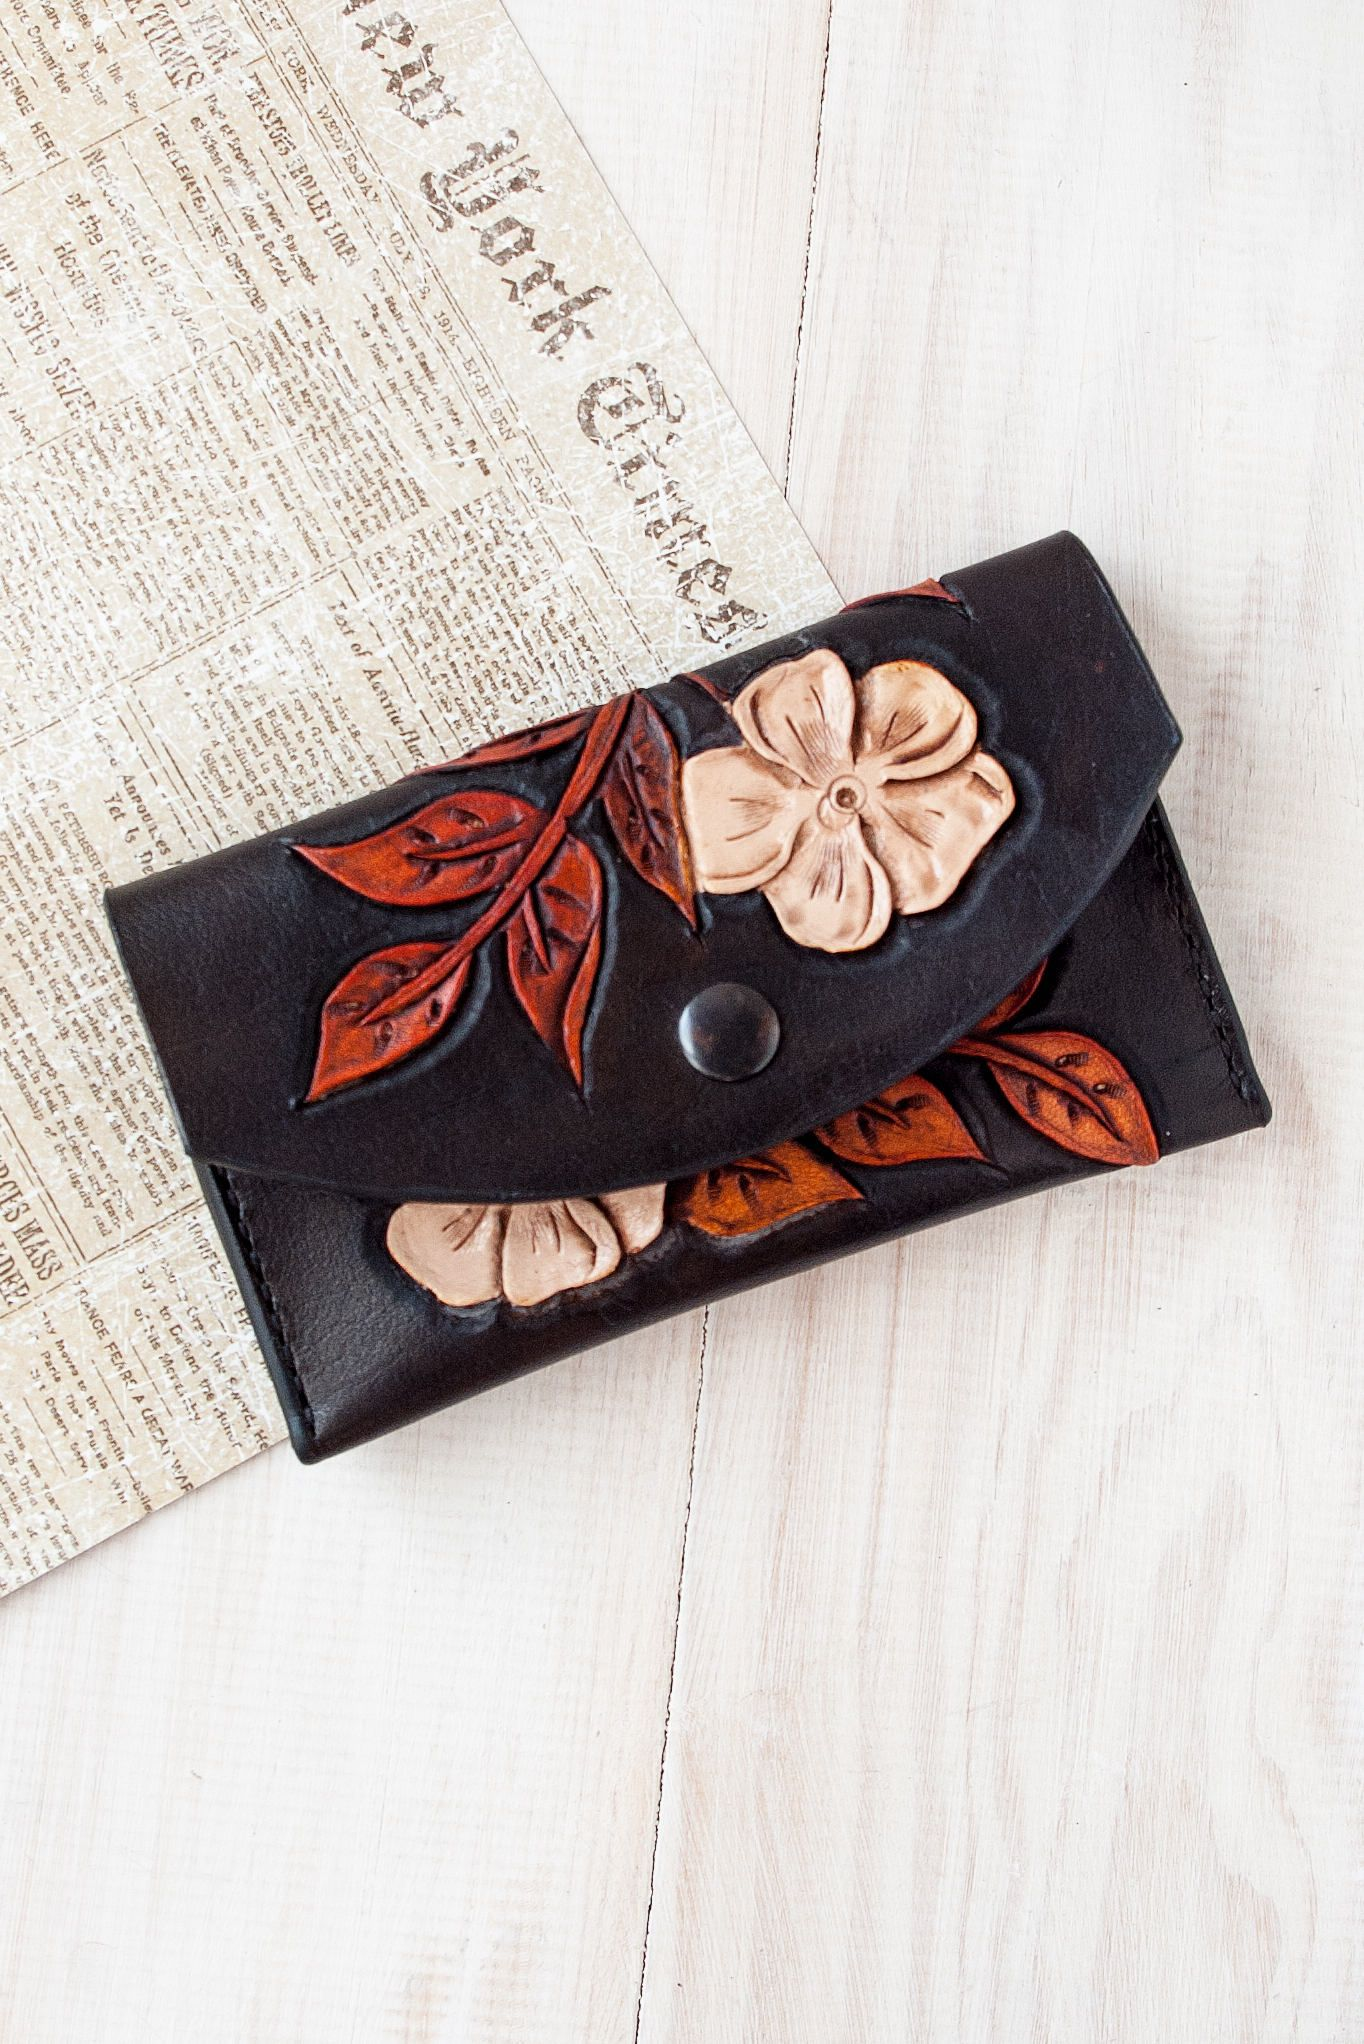 Pin By Ikleatherbag On Valentine S Day Gift Ideas For Him Her Wallets For Women Minimalist Wallet Thin Leather Wallet